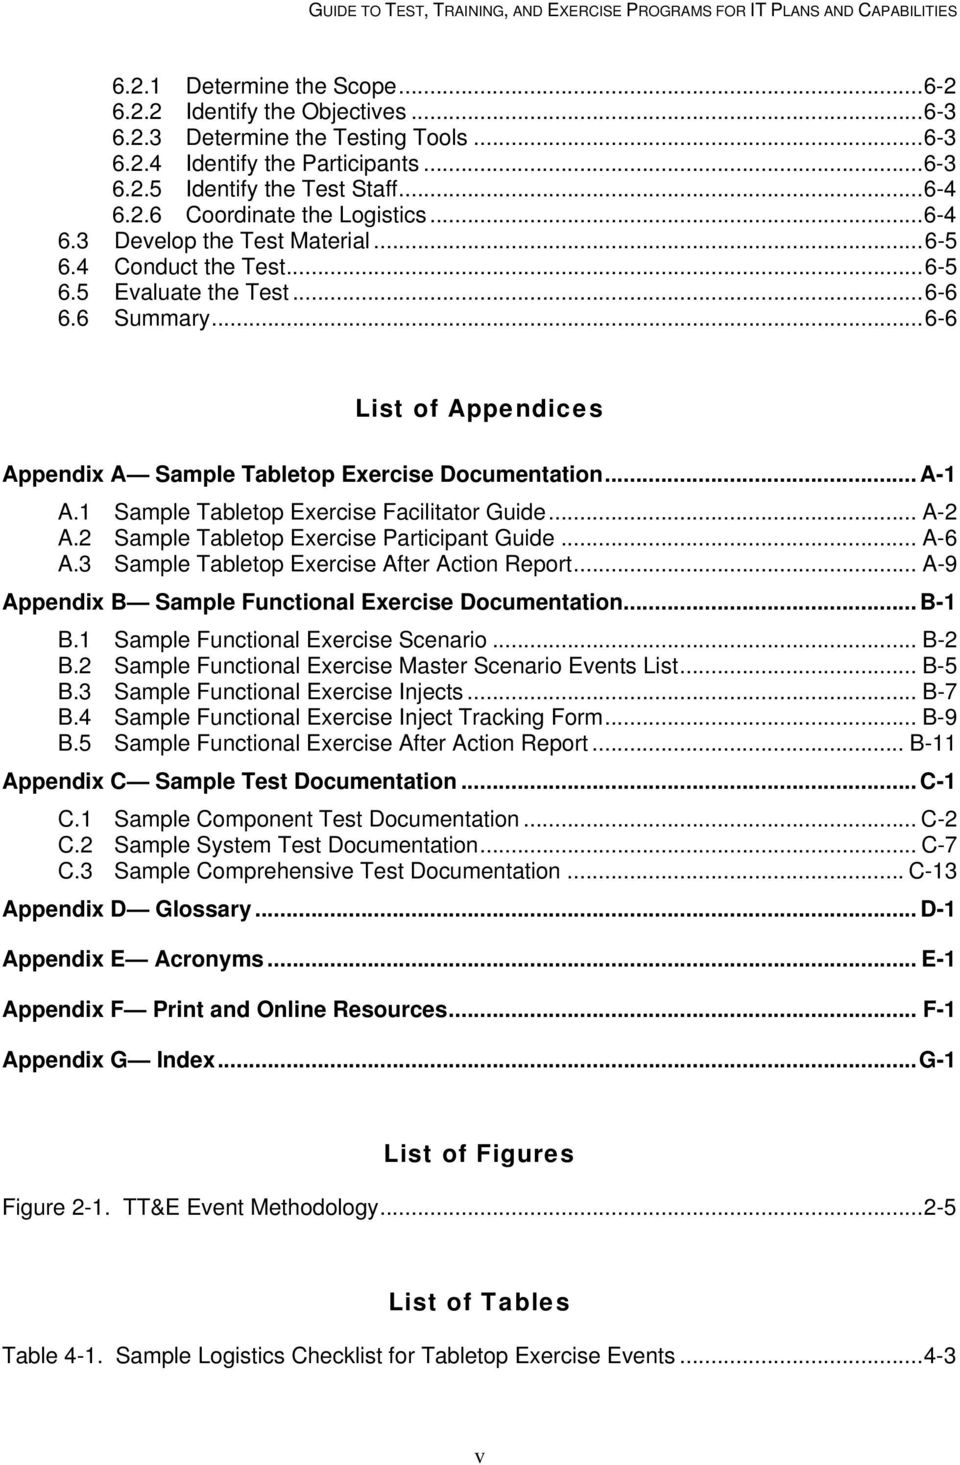 1 Sample Tabletop Exercise Facilitator Guide... A-2 A.2 Sample Tabletop Exercise Participant Guide... A-6 A.3 Sample Tabletop Exercise After Action Report.